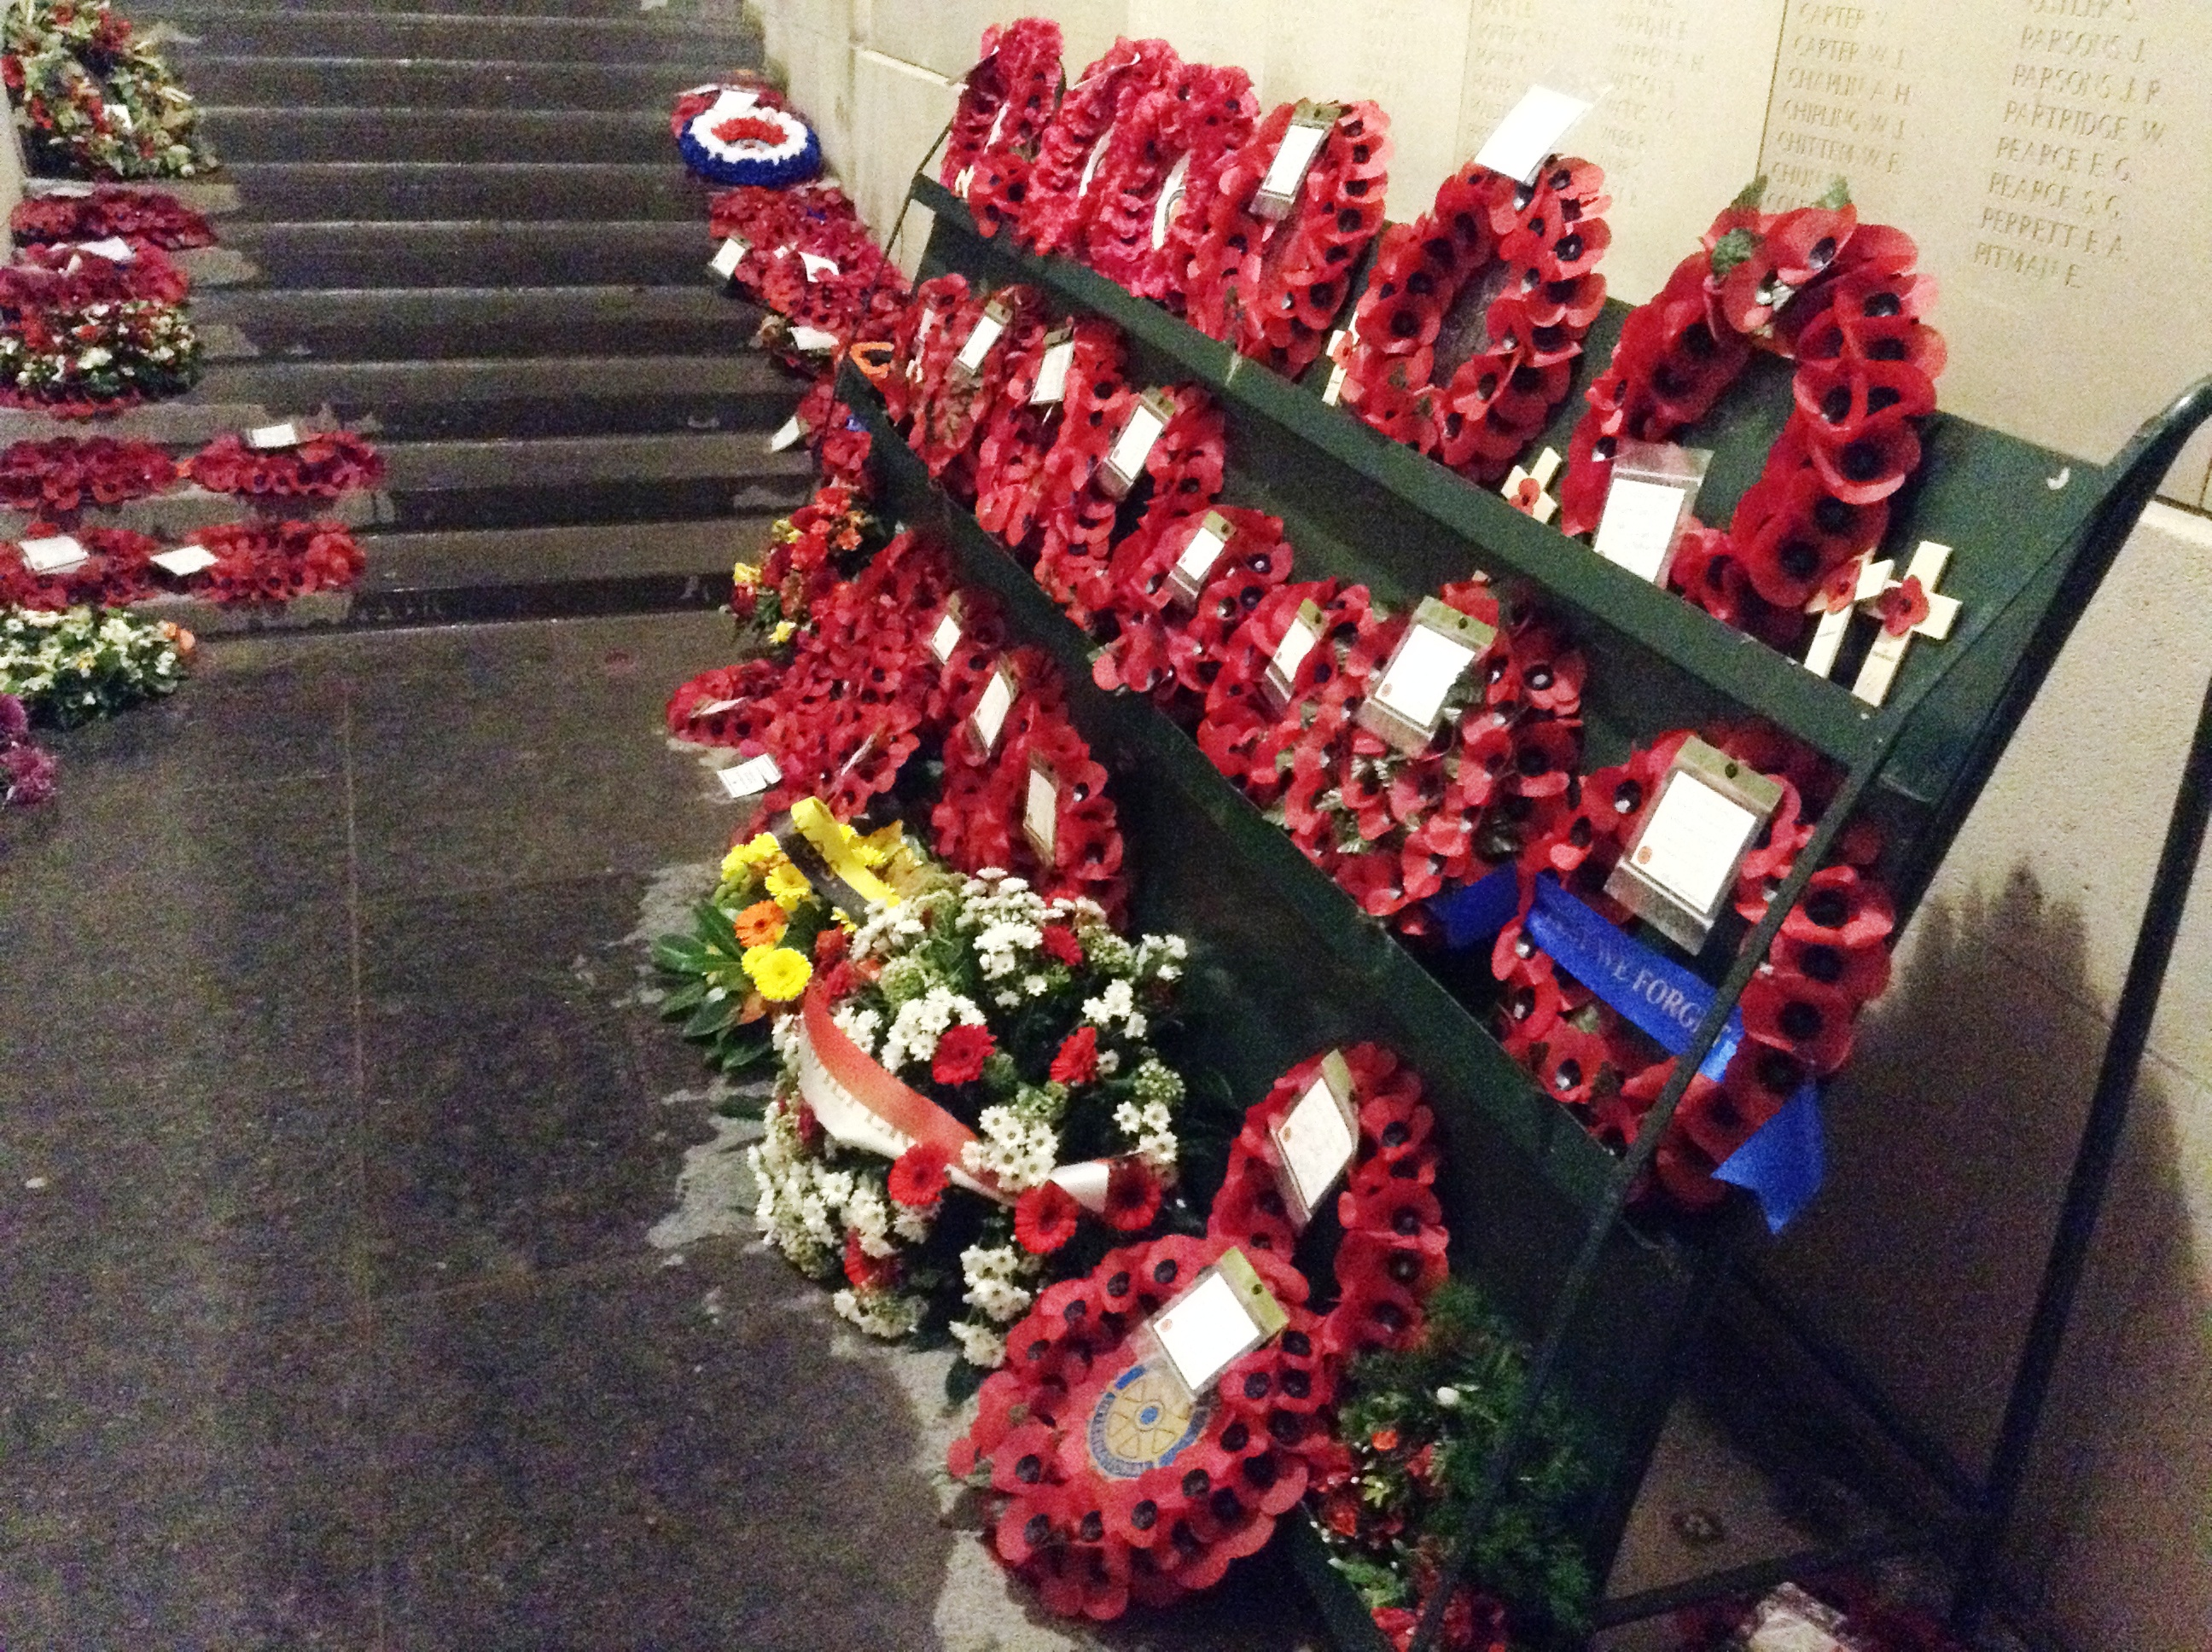 23 The poppy wreaths after the Last Post Ceremony, Menin Gate